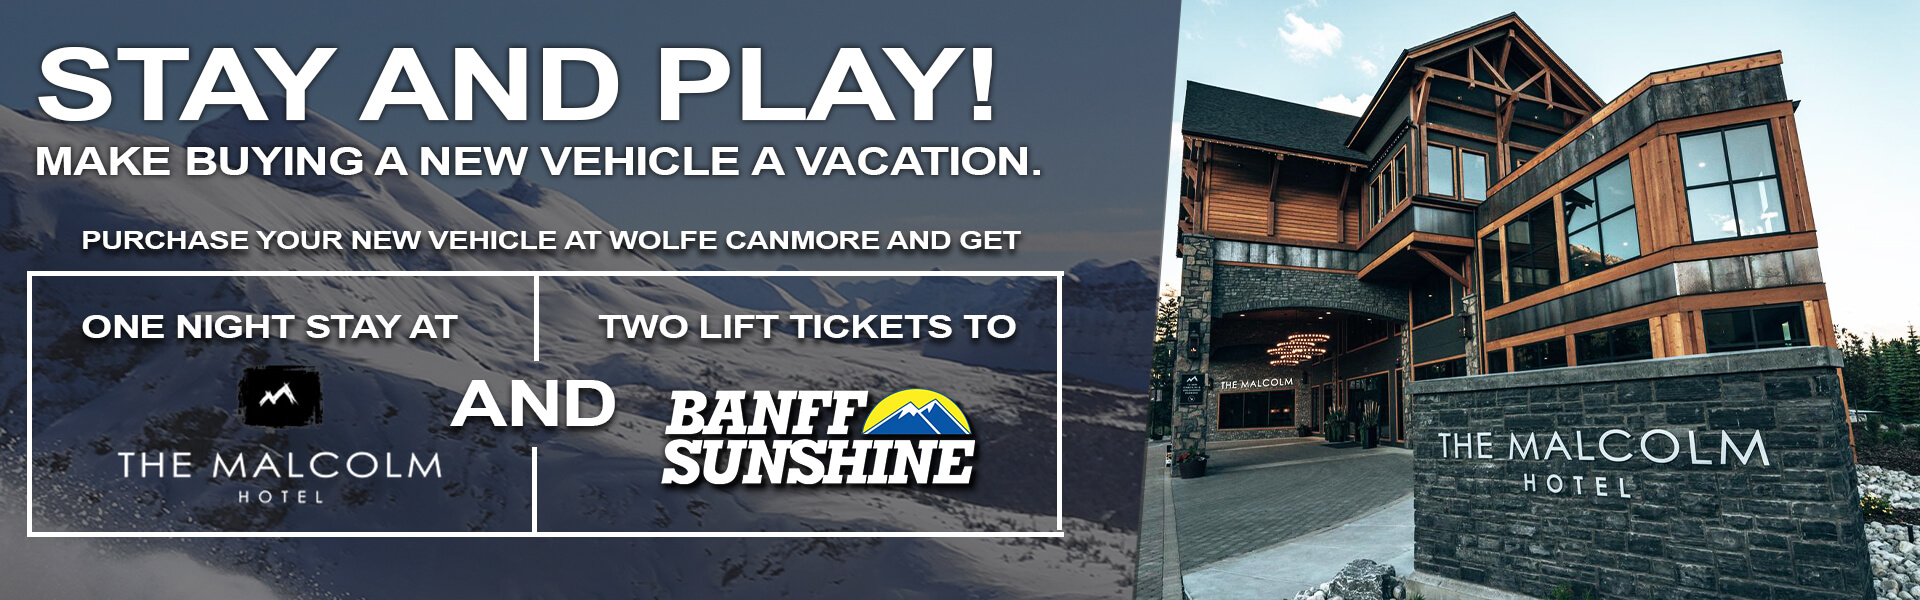 Stay & Play with Wolfe Canmore